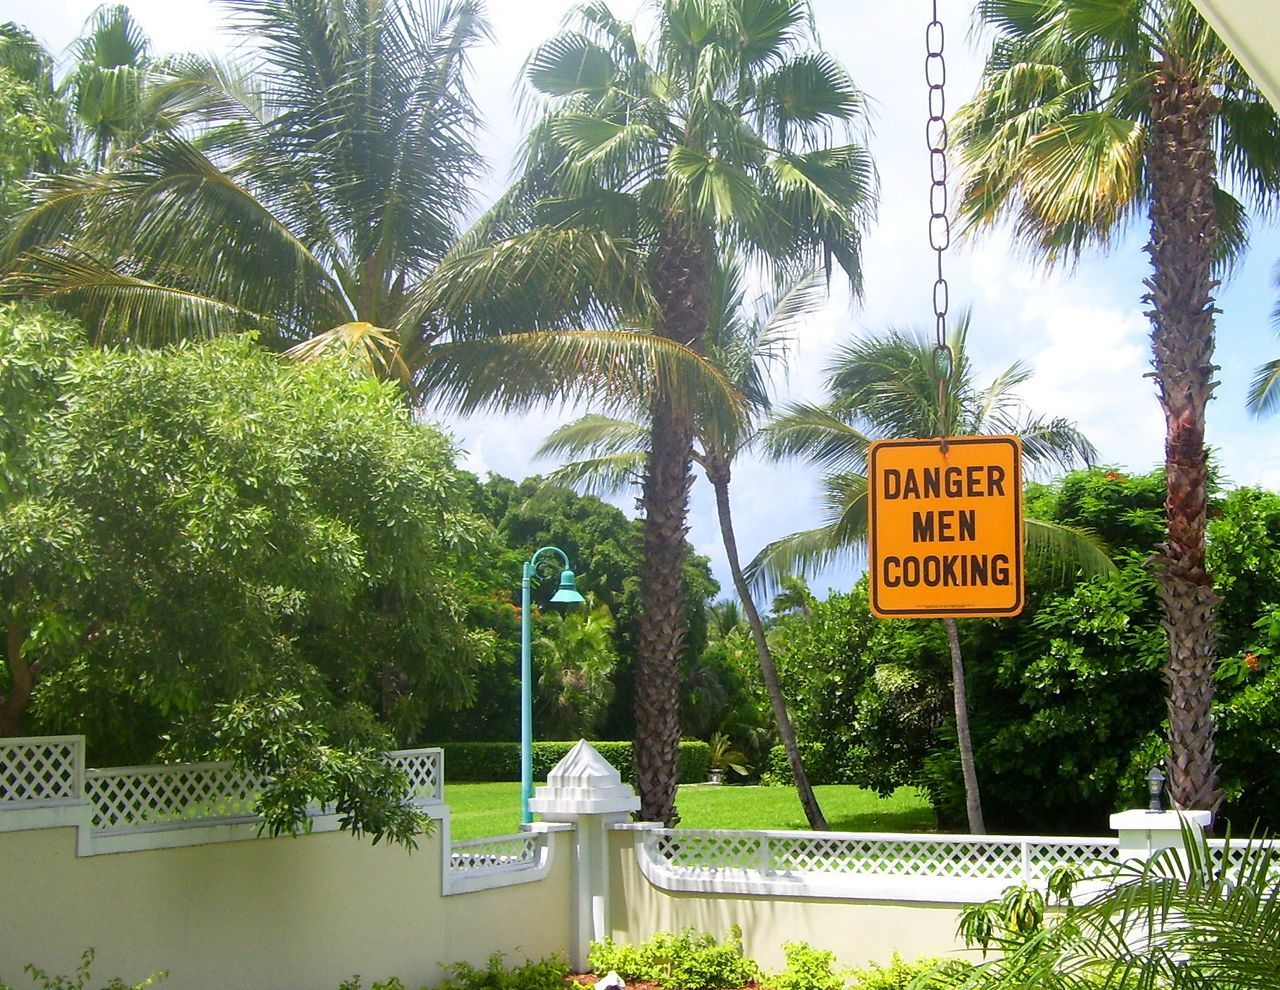 Barbecue BBQ Beauty In Nature Communication Danger Men Cooking Day Father's Day Fathers Fathersday Green Color Growth Humor Men Cooking Nature No People Outdoors Palm Tree Sign Sky Text Tree Tree Trunk